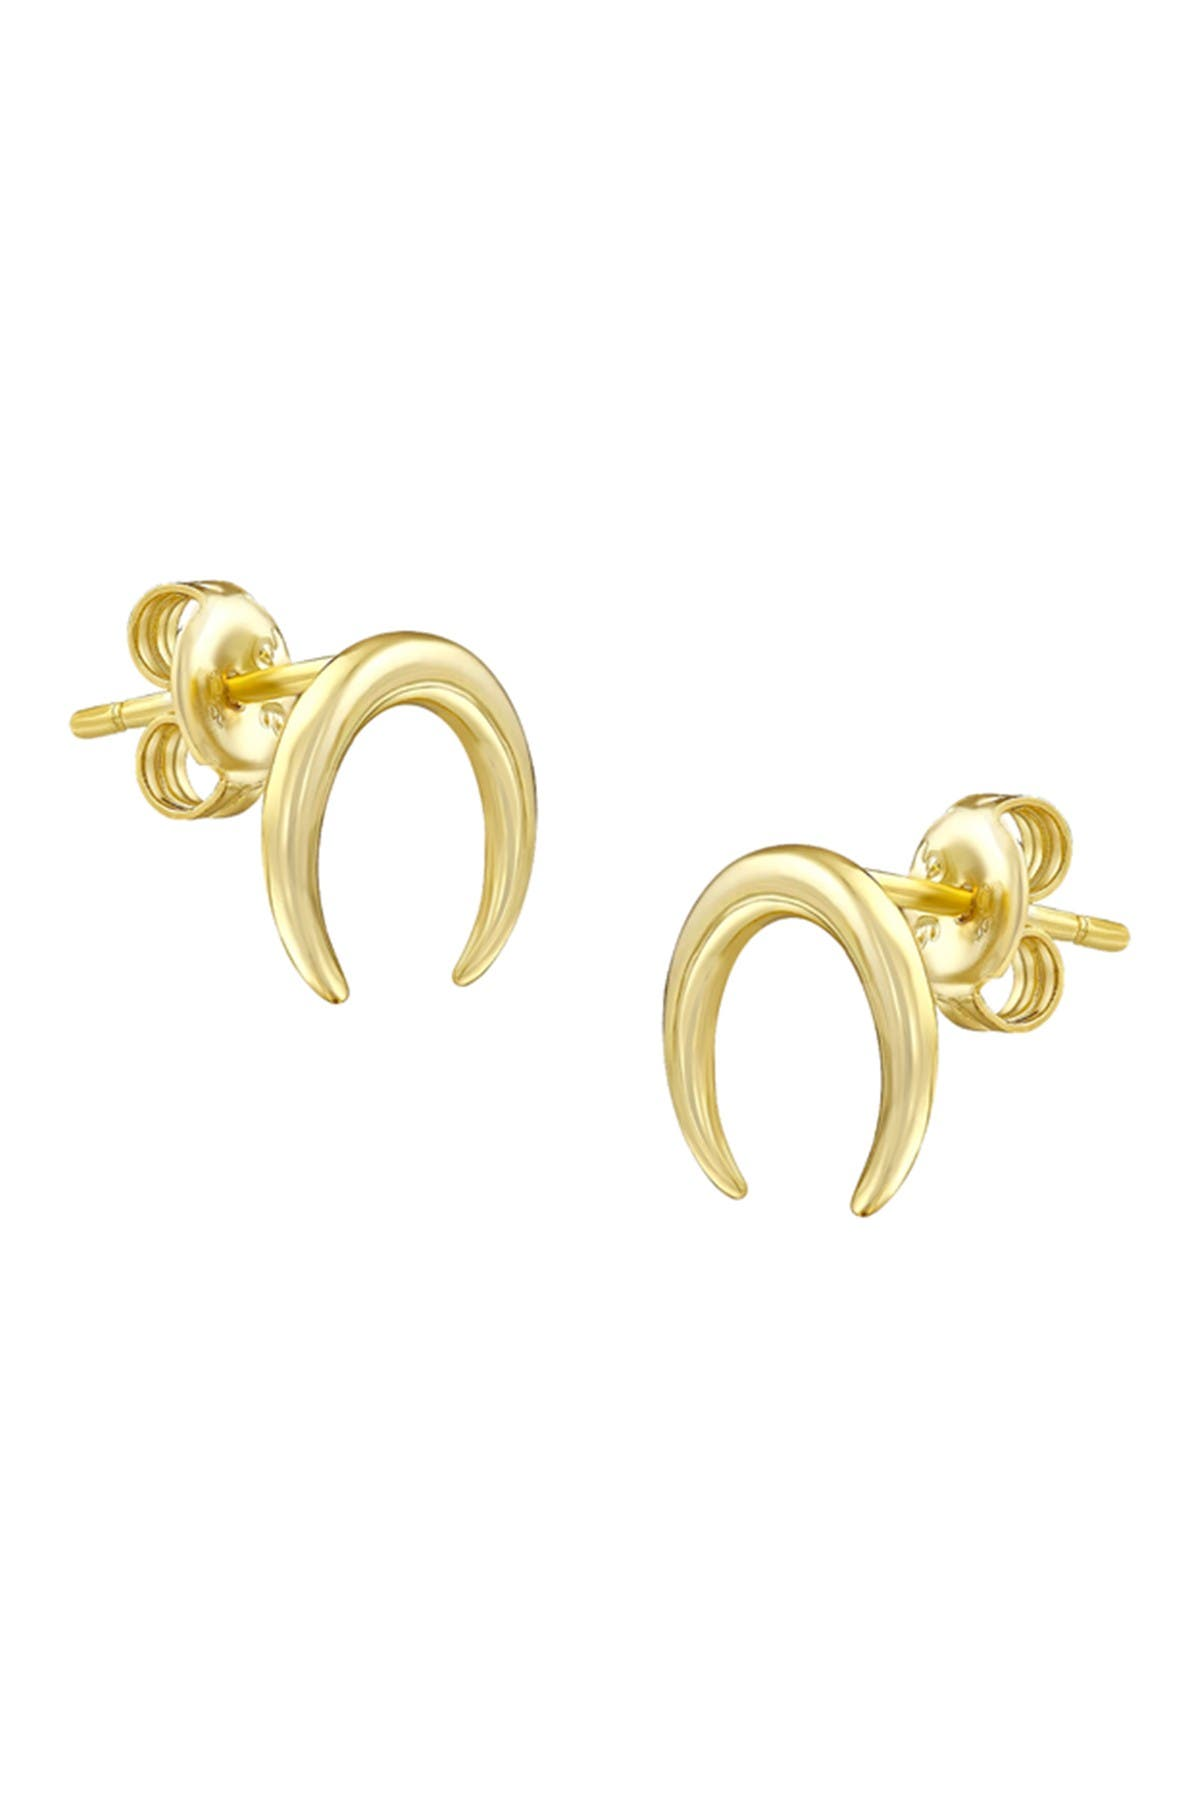 Image of Savvy Cie 18K Gold Vermeil 15mm Crescent Moon Stud Earrings